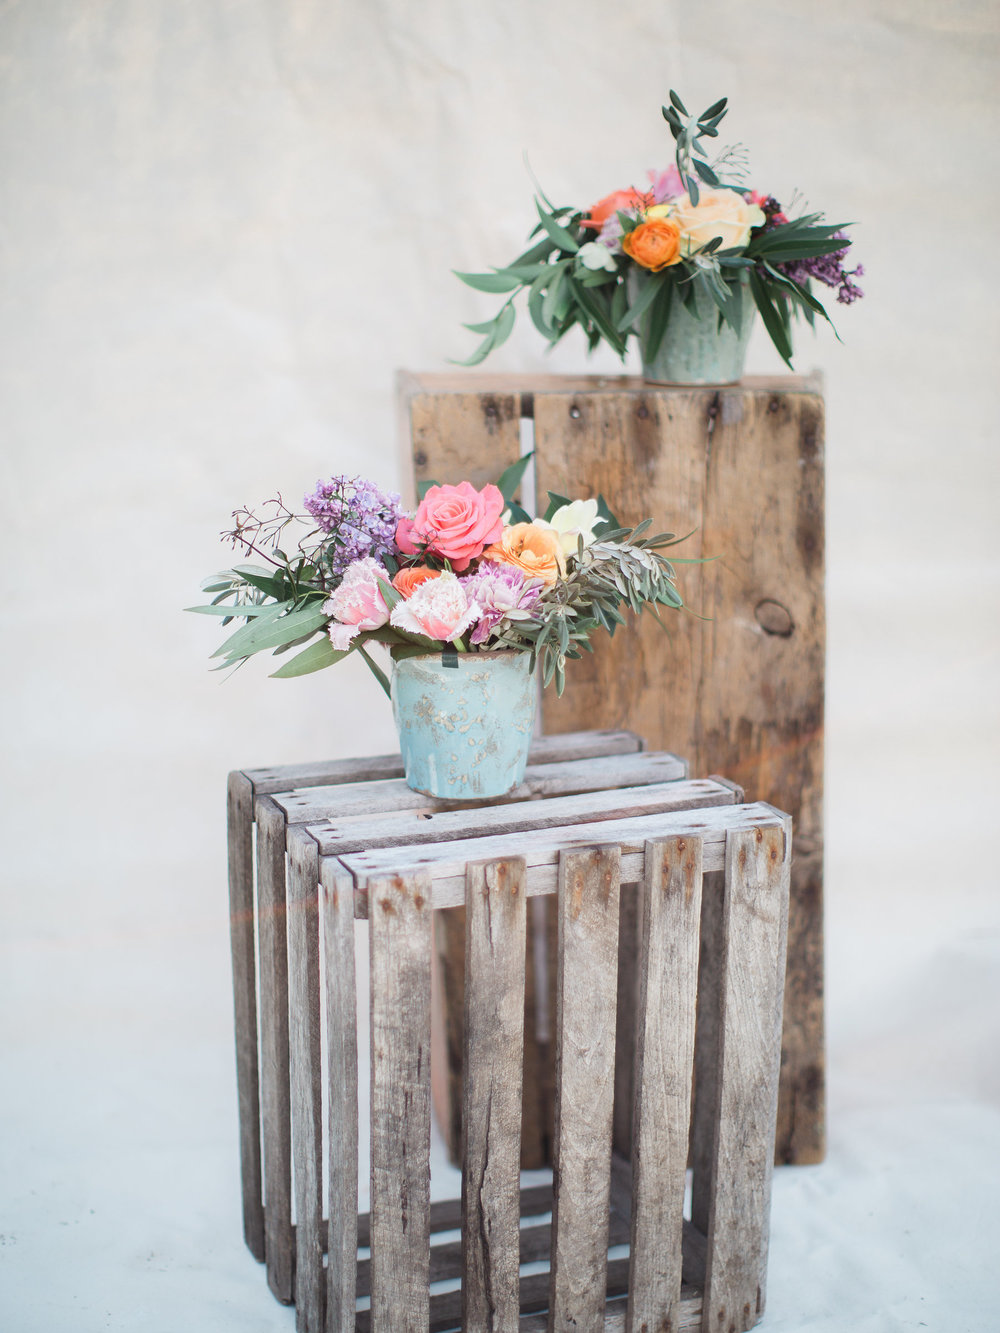 bloom flower arrangements